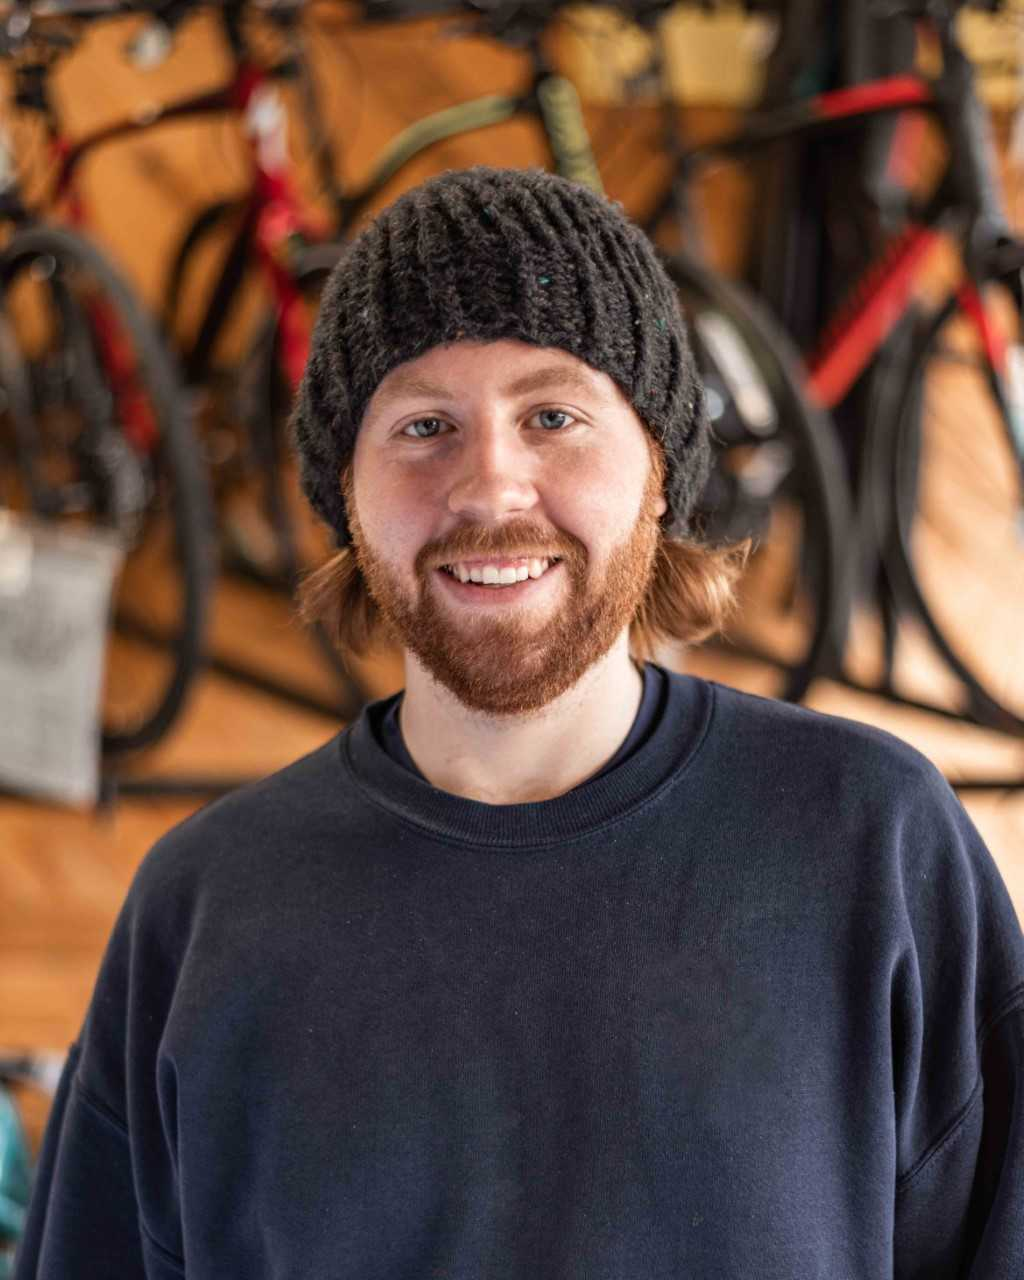 Connor    Hometown:  Philadelphia, PA   Experience:  Has been working at the shop since 2017 and has ridden bikes seriously as a hobby for about 4 years.   Favorite Bike:  The Santa Cruz   What do you do when you are not on the bike?  Enjoys watching movies, considers himself a big movie buff.